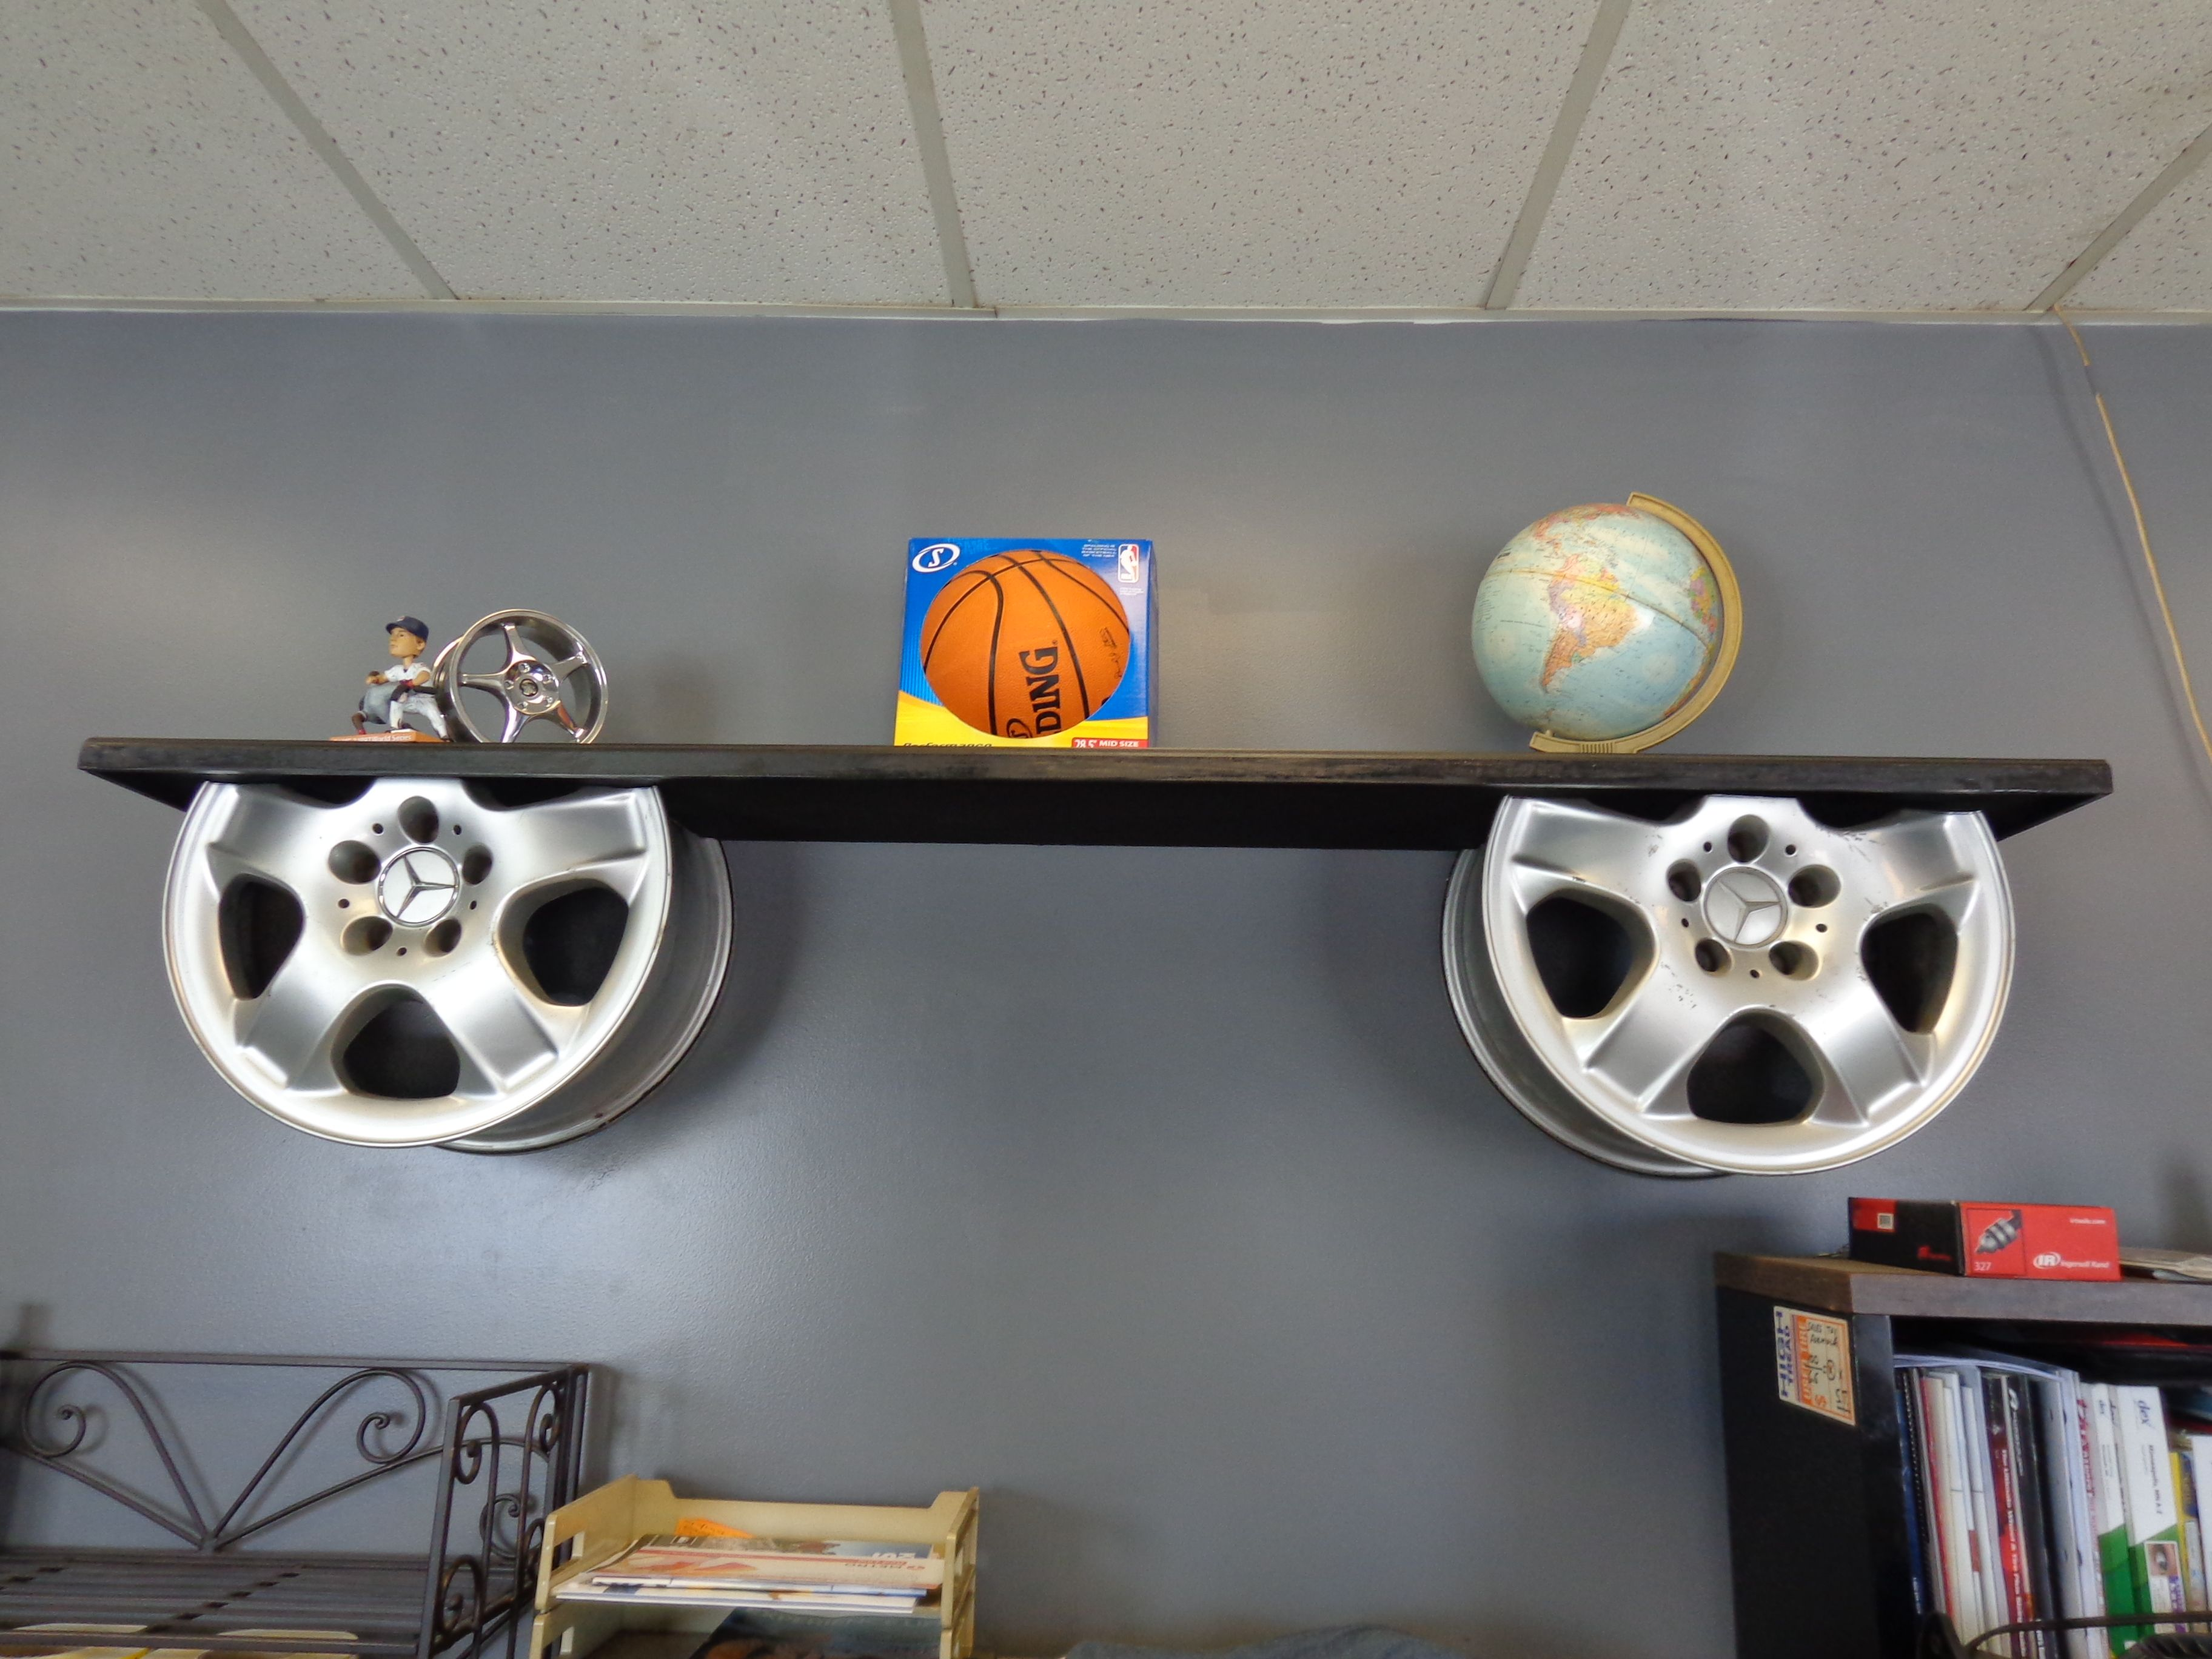 Pin By Tirezoo On Tire And Wheel Repurposing Cars Room Decor Car Bedroom